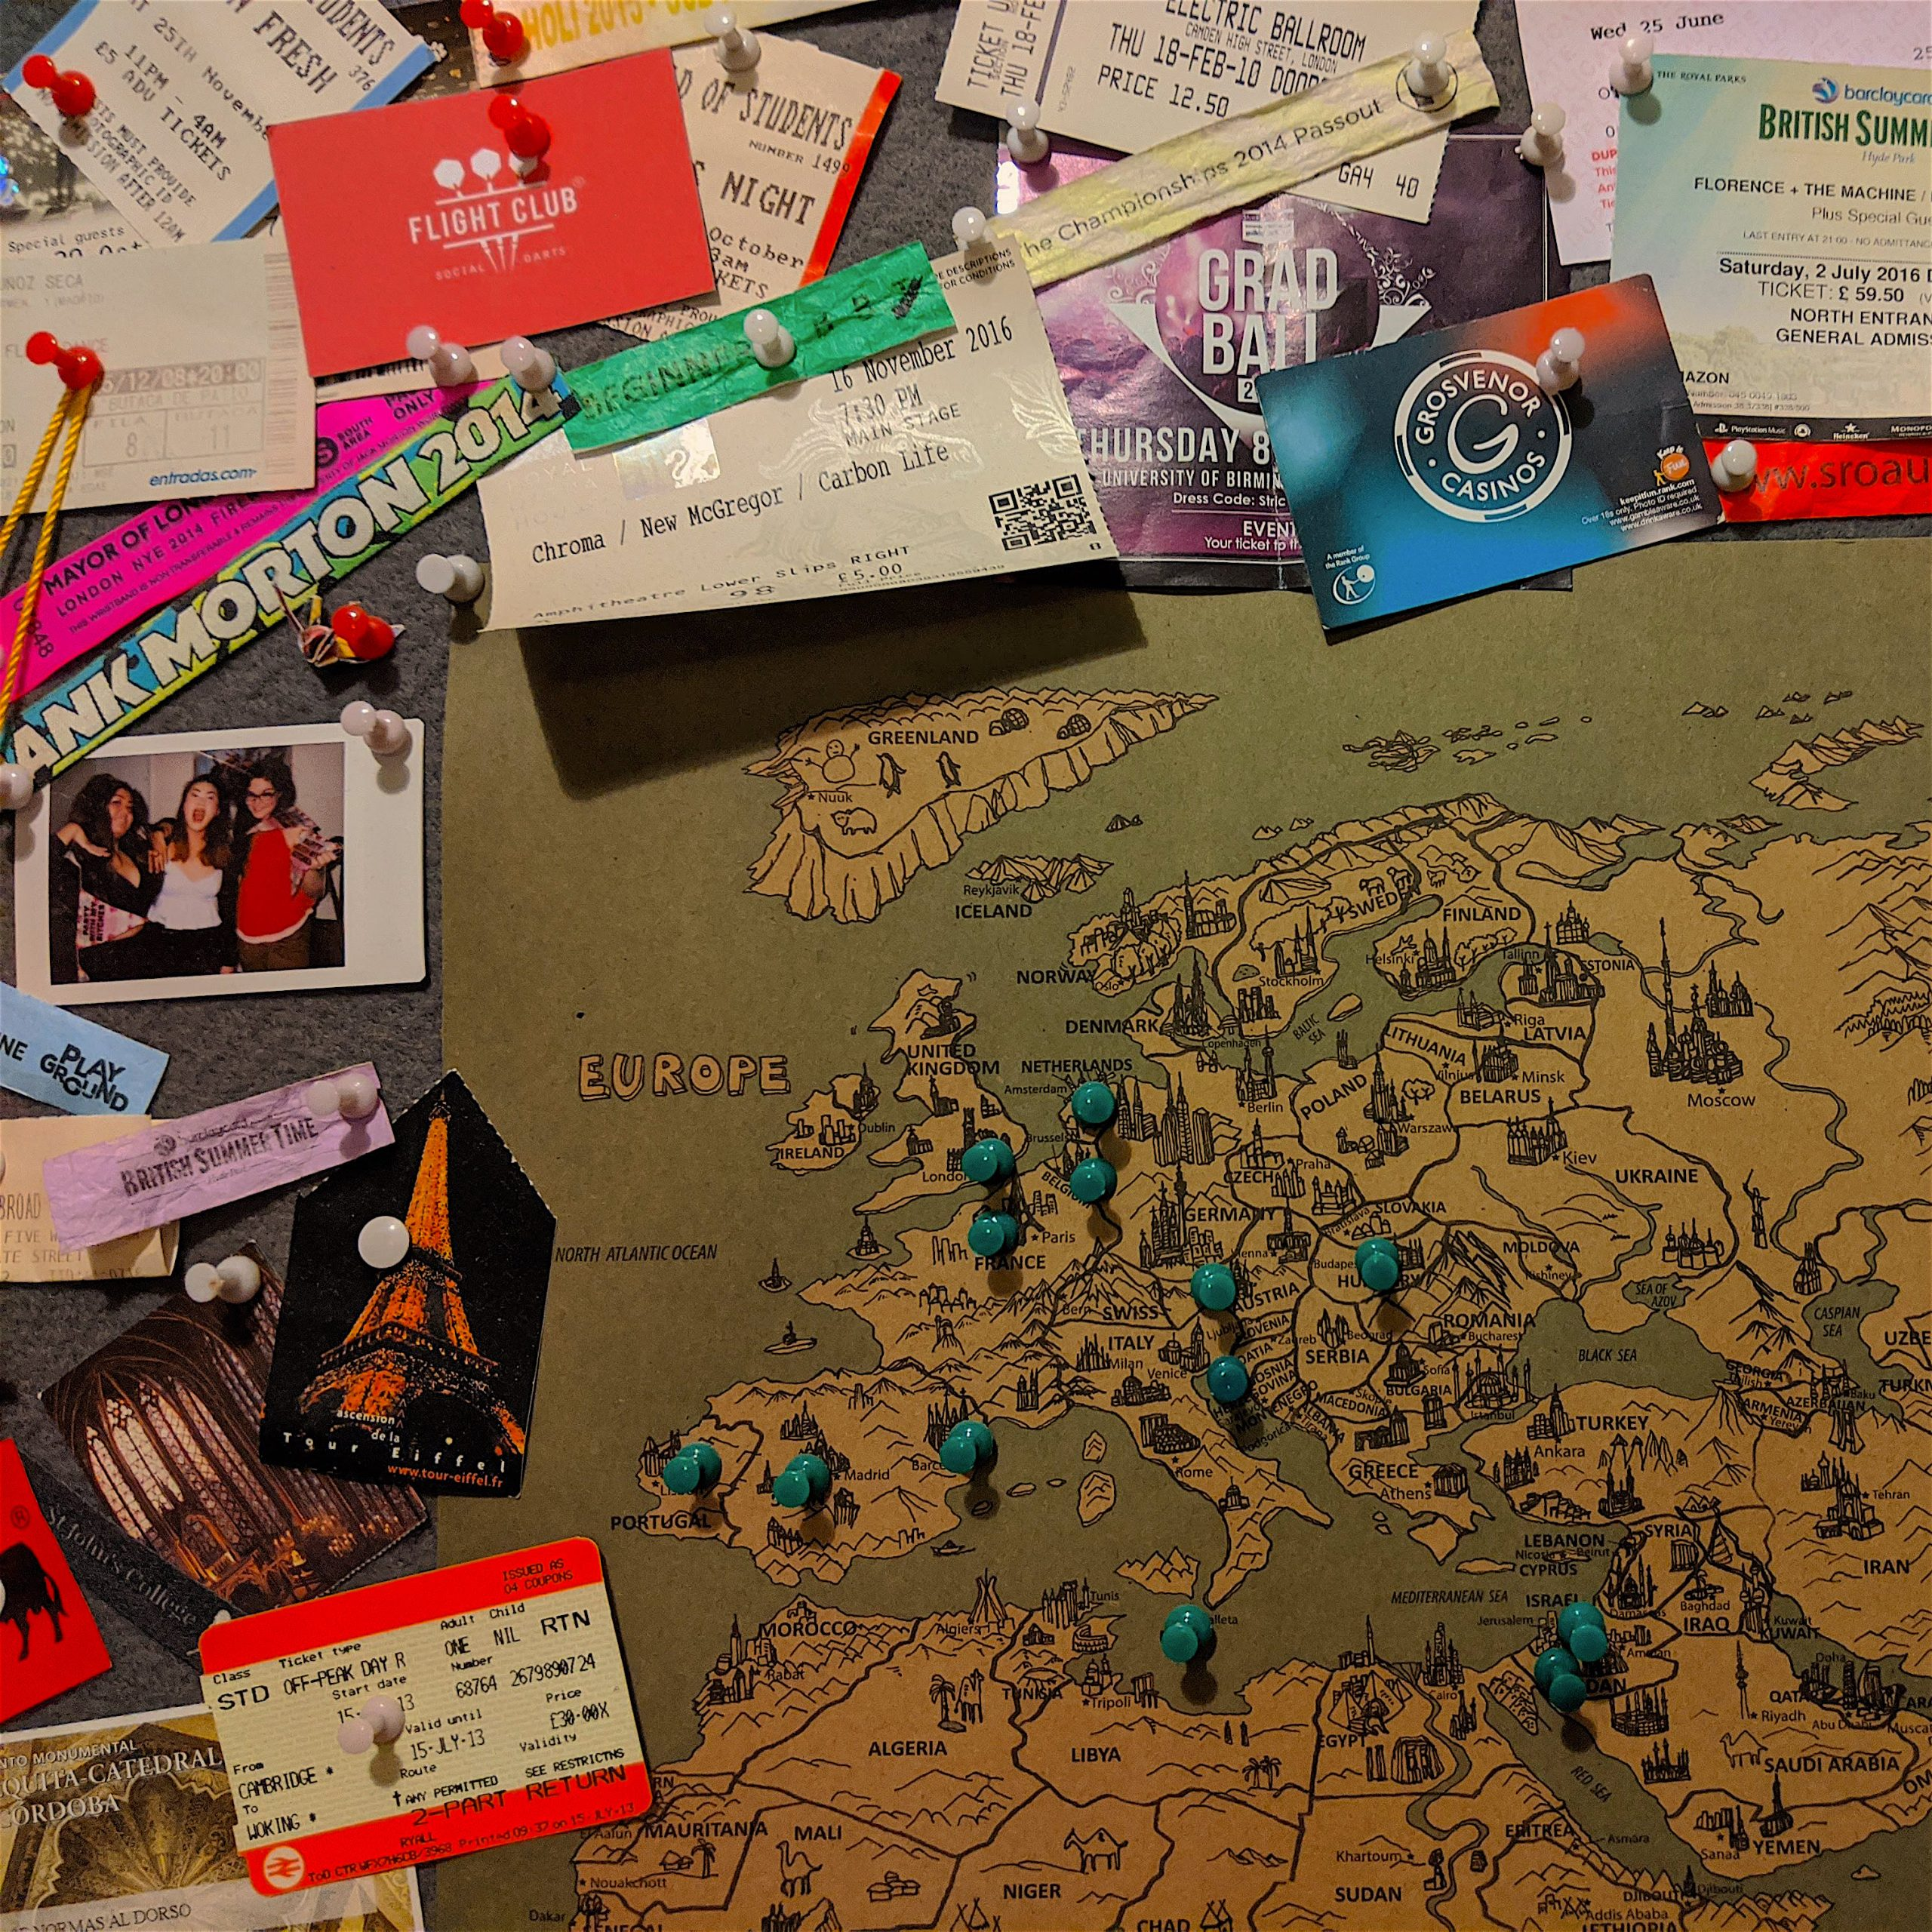 A map of the world with mementos pinned to it